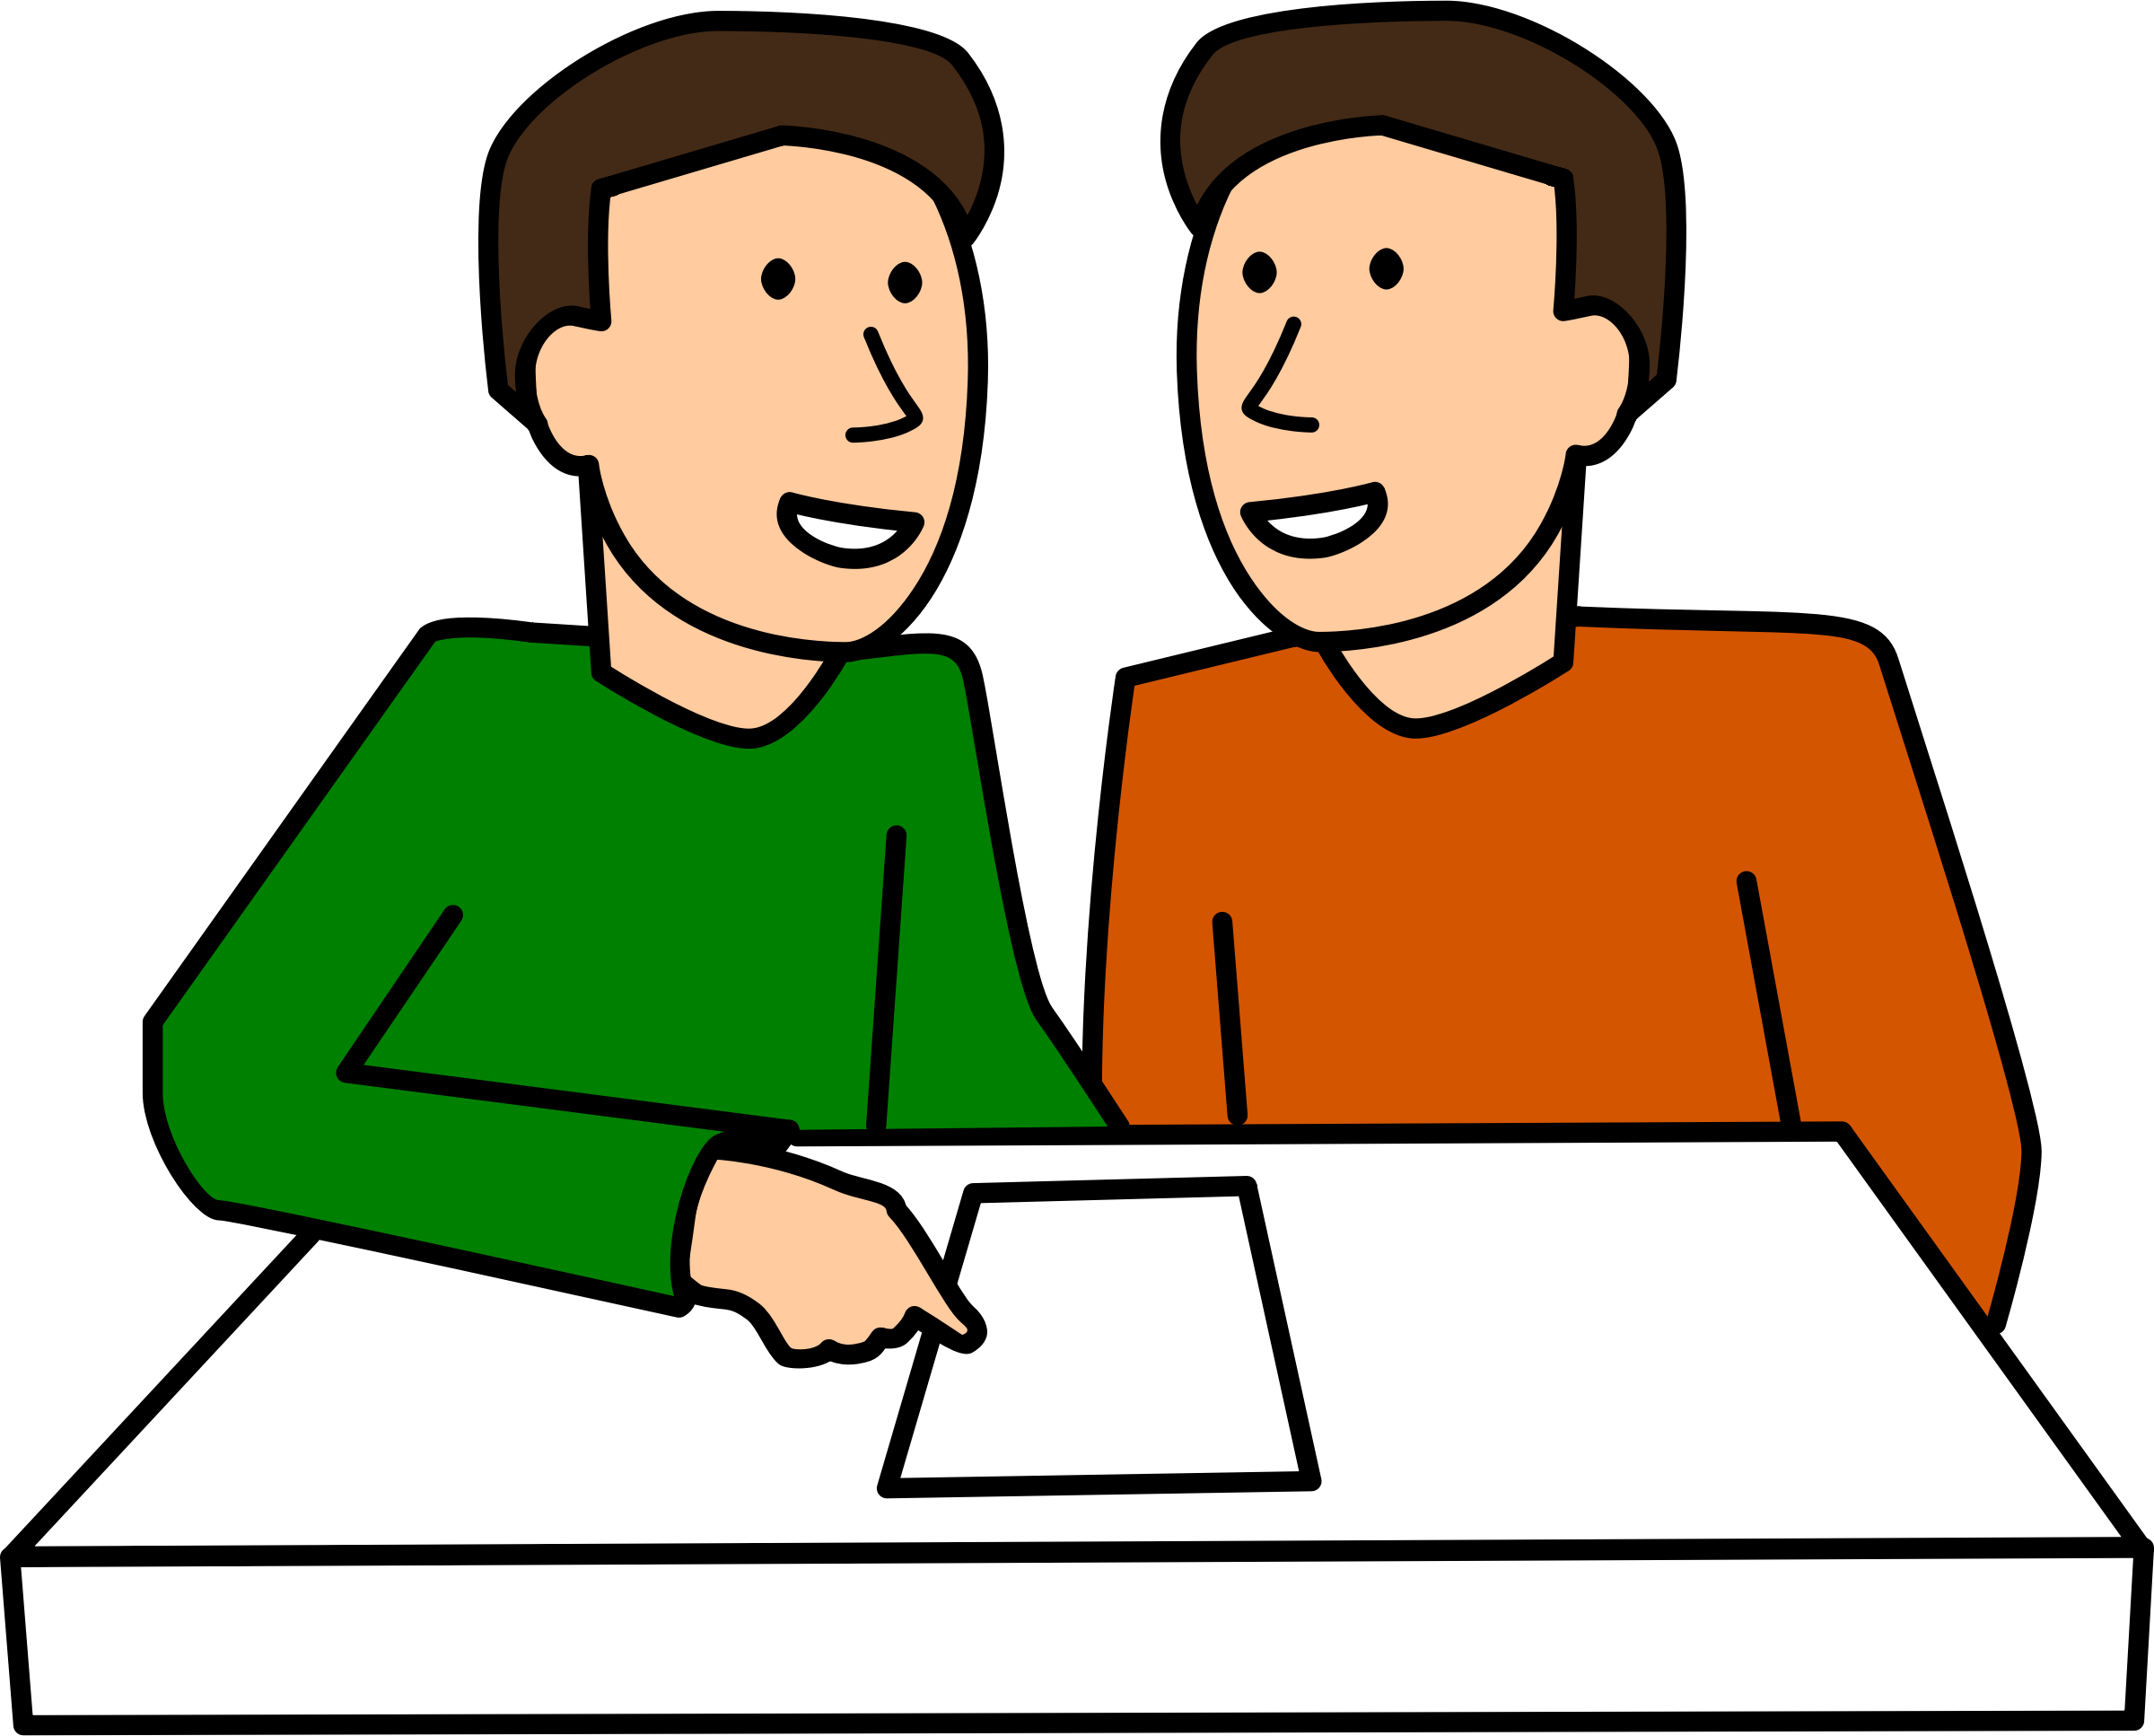 svg library download Two students working together clipart. Partner work males big